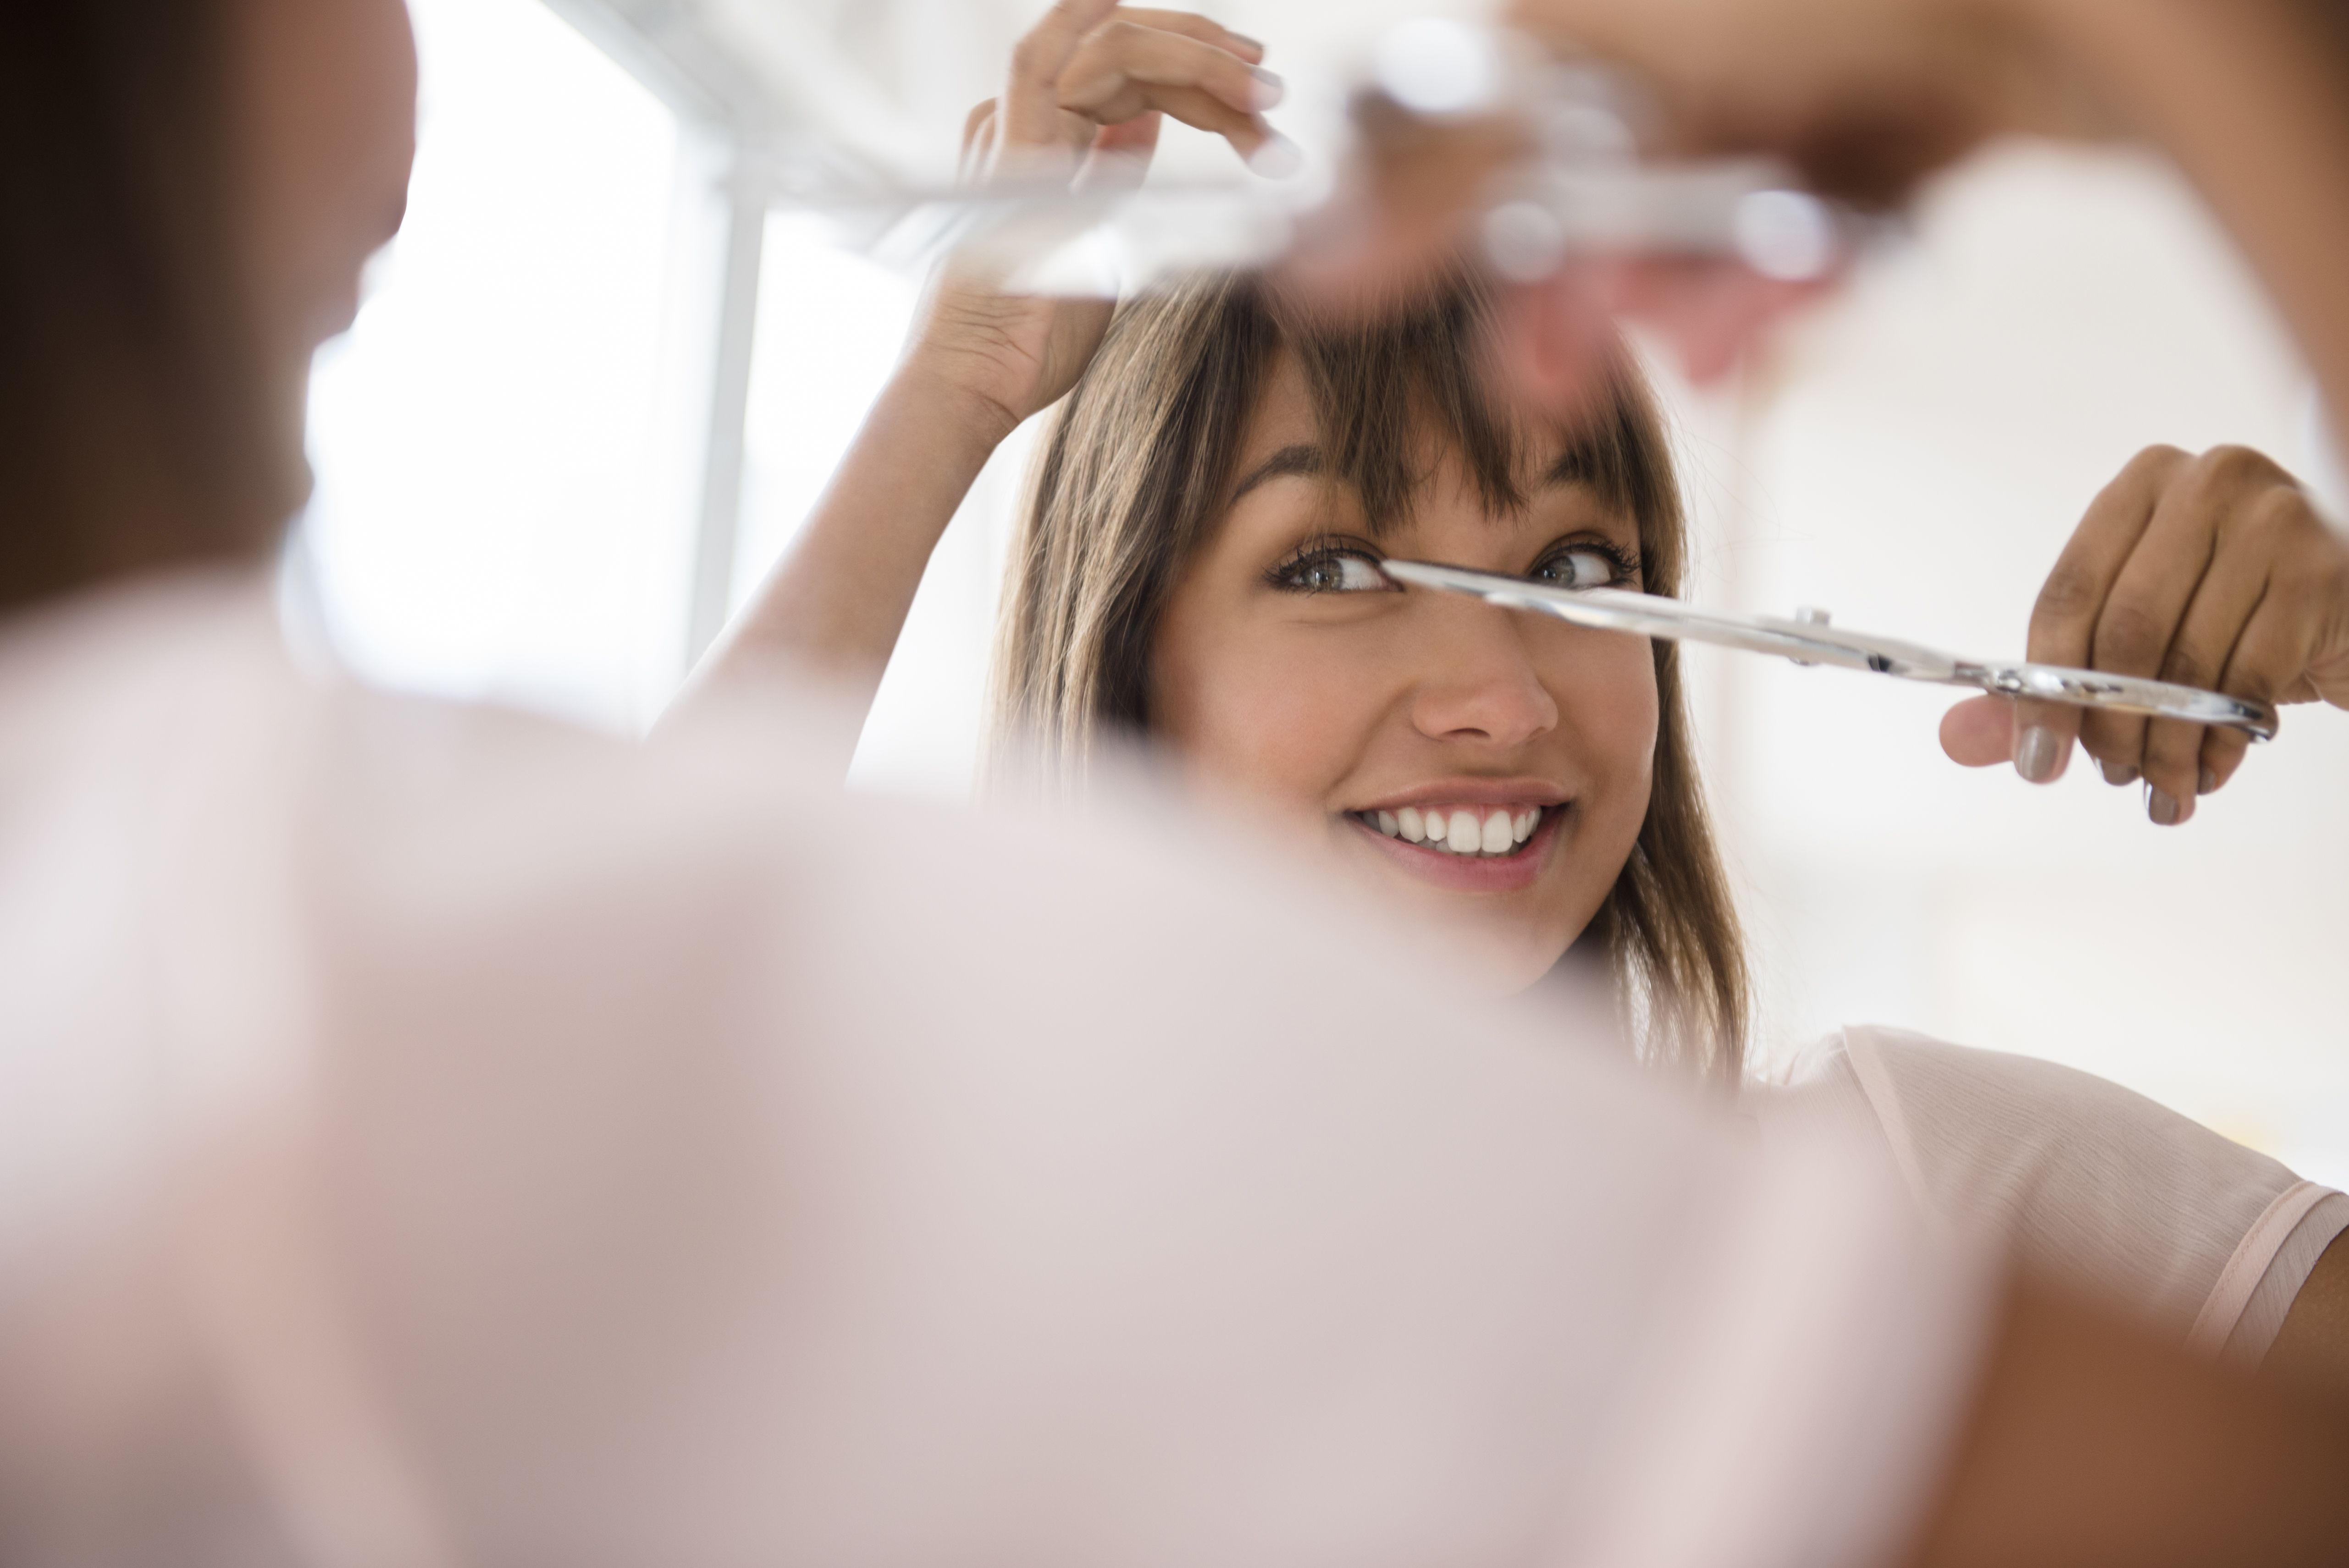 13 Ways to Cut Your Own Hair At Home Like a Pro